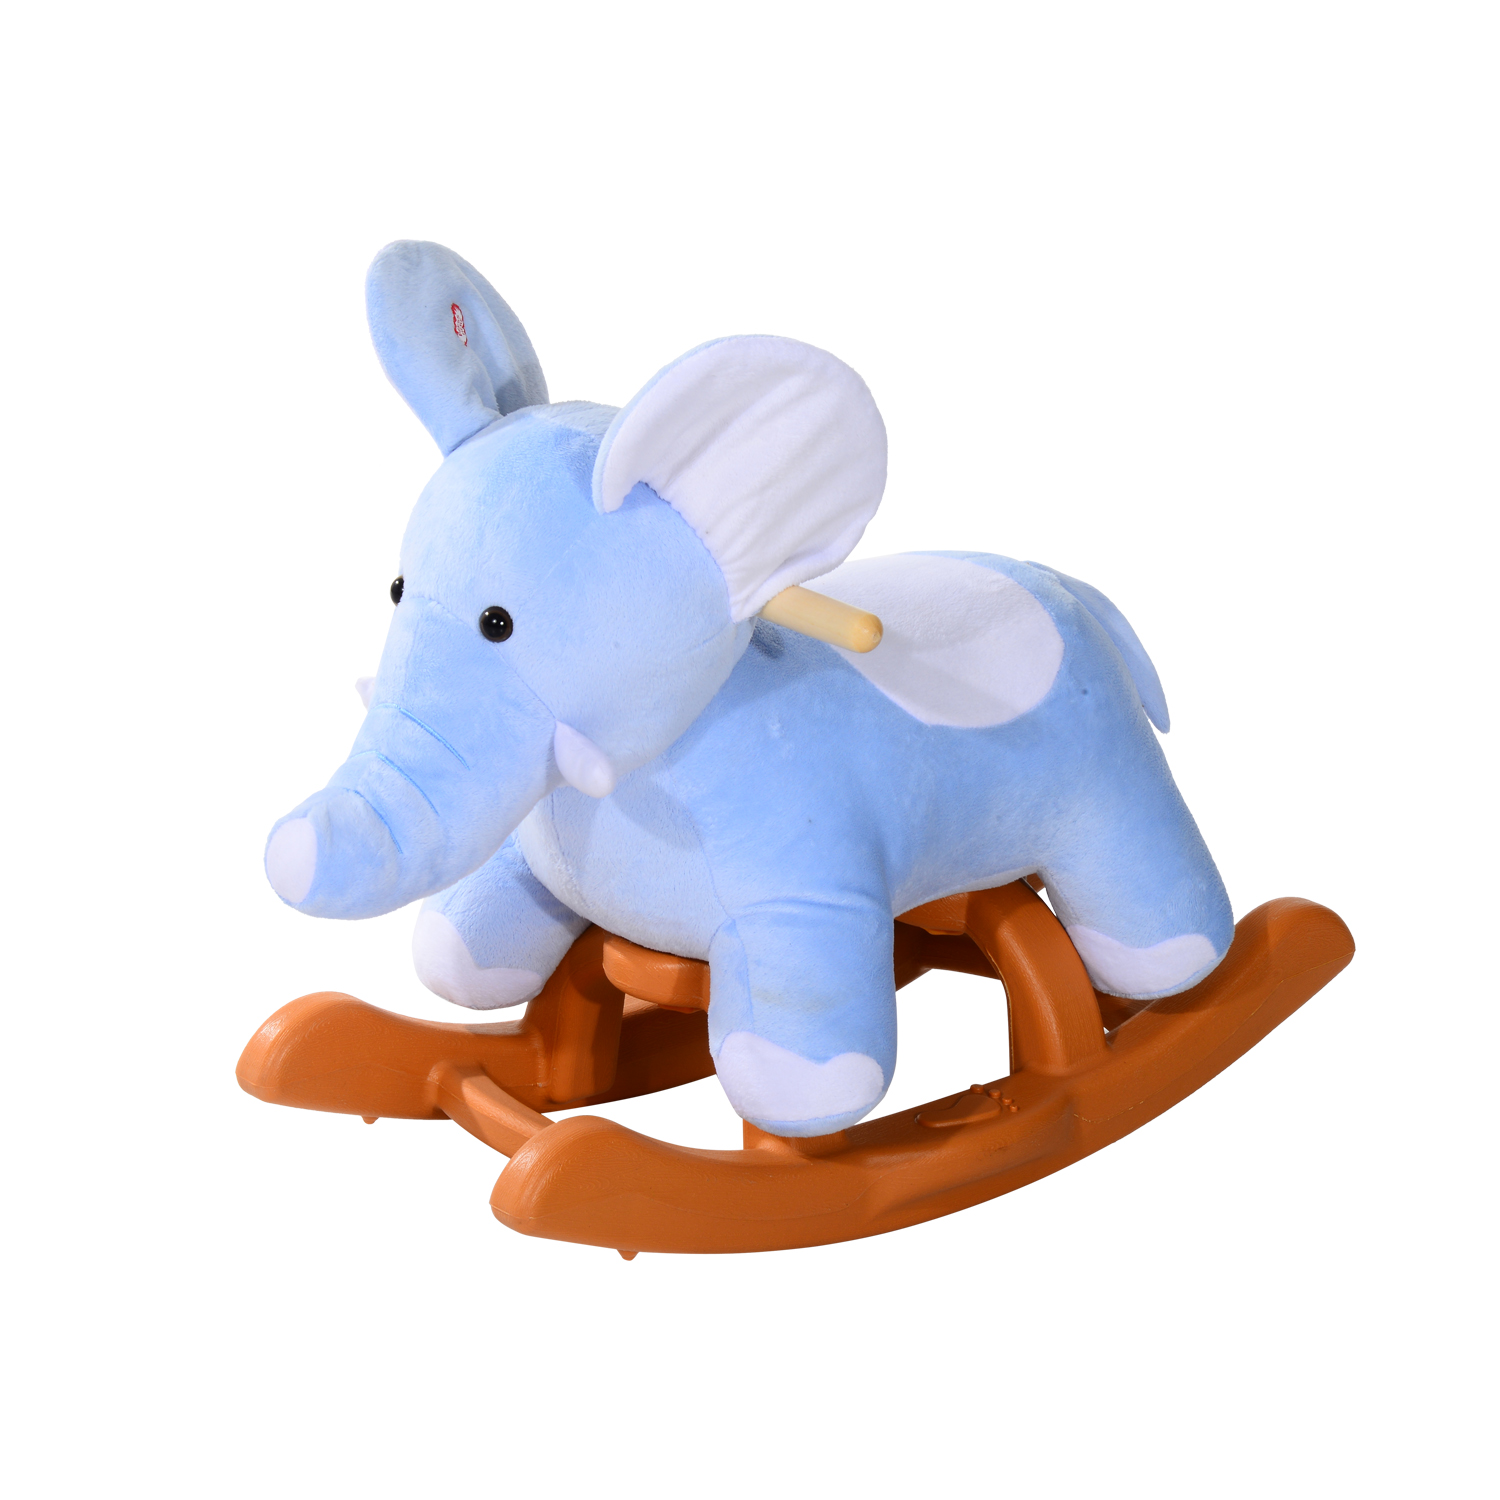 Qaba Kids Plush Rocking Horse Style Elephant Theme Rocker Chair